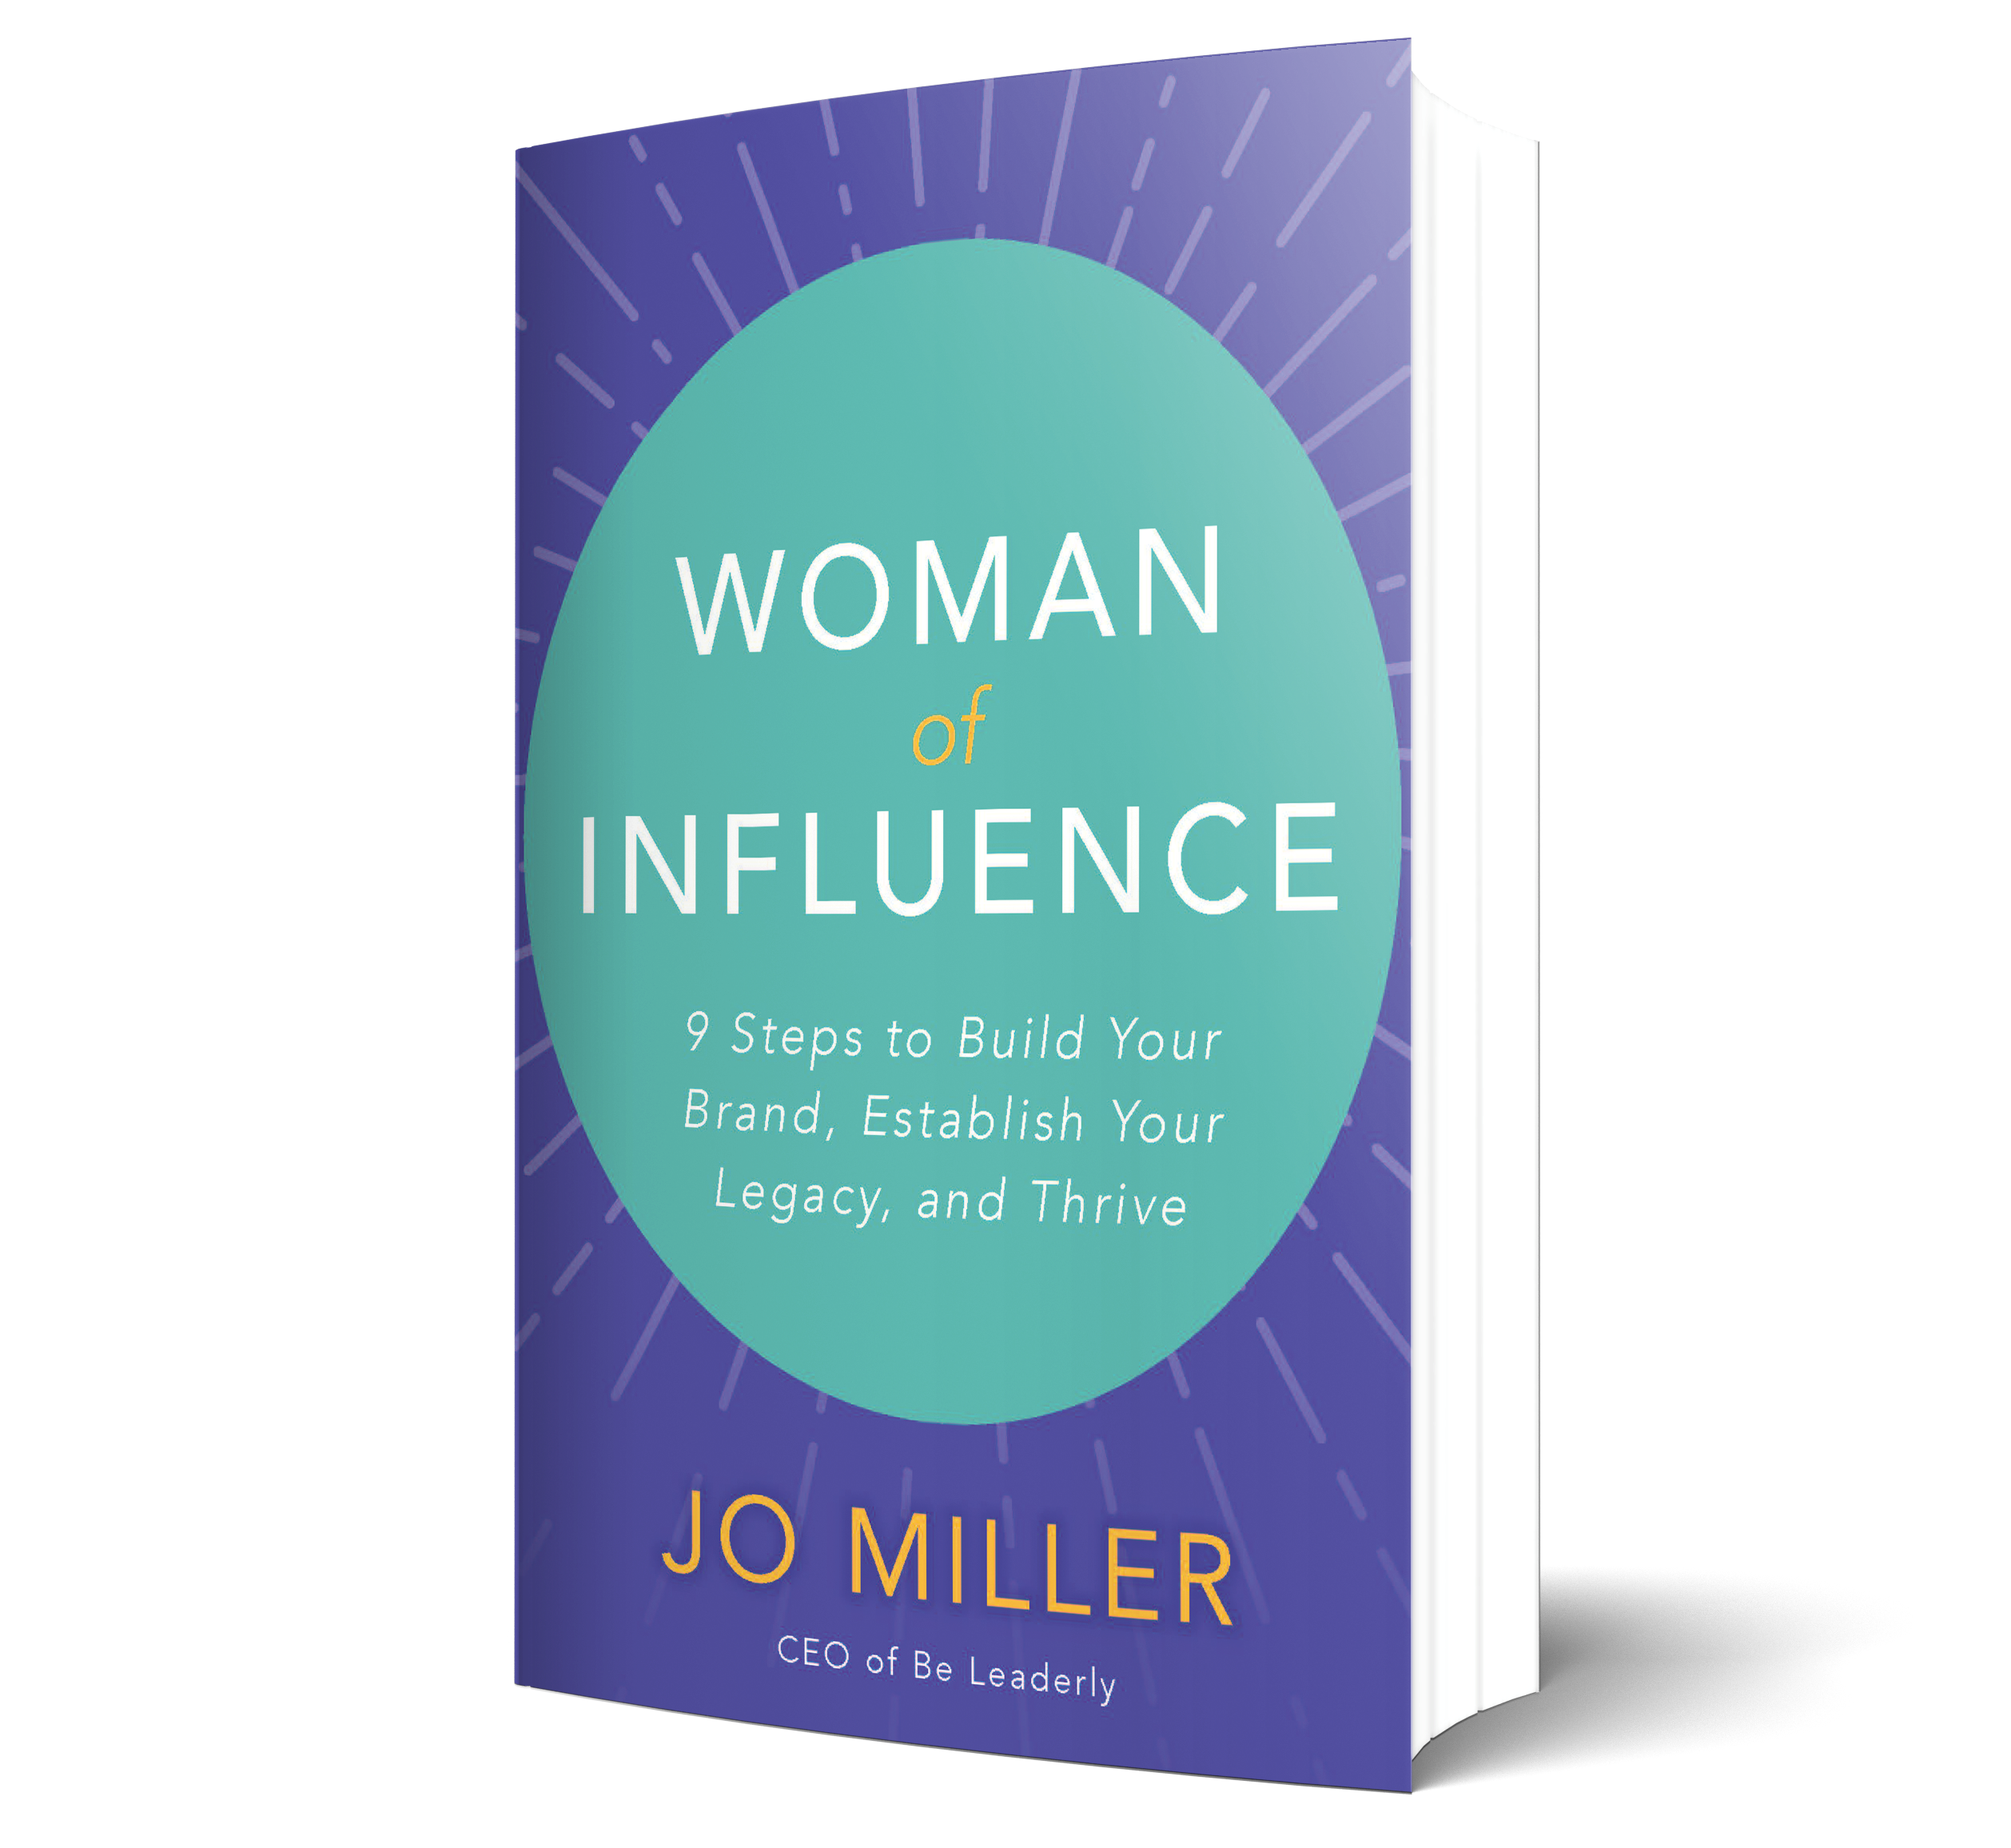 Woman of Influence by Jo Miller